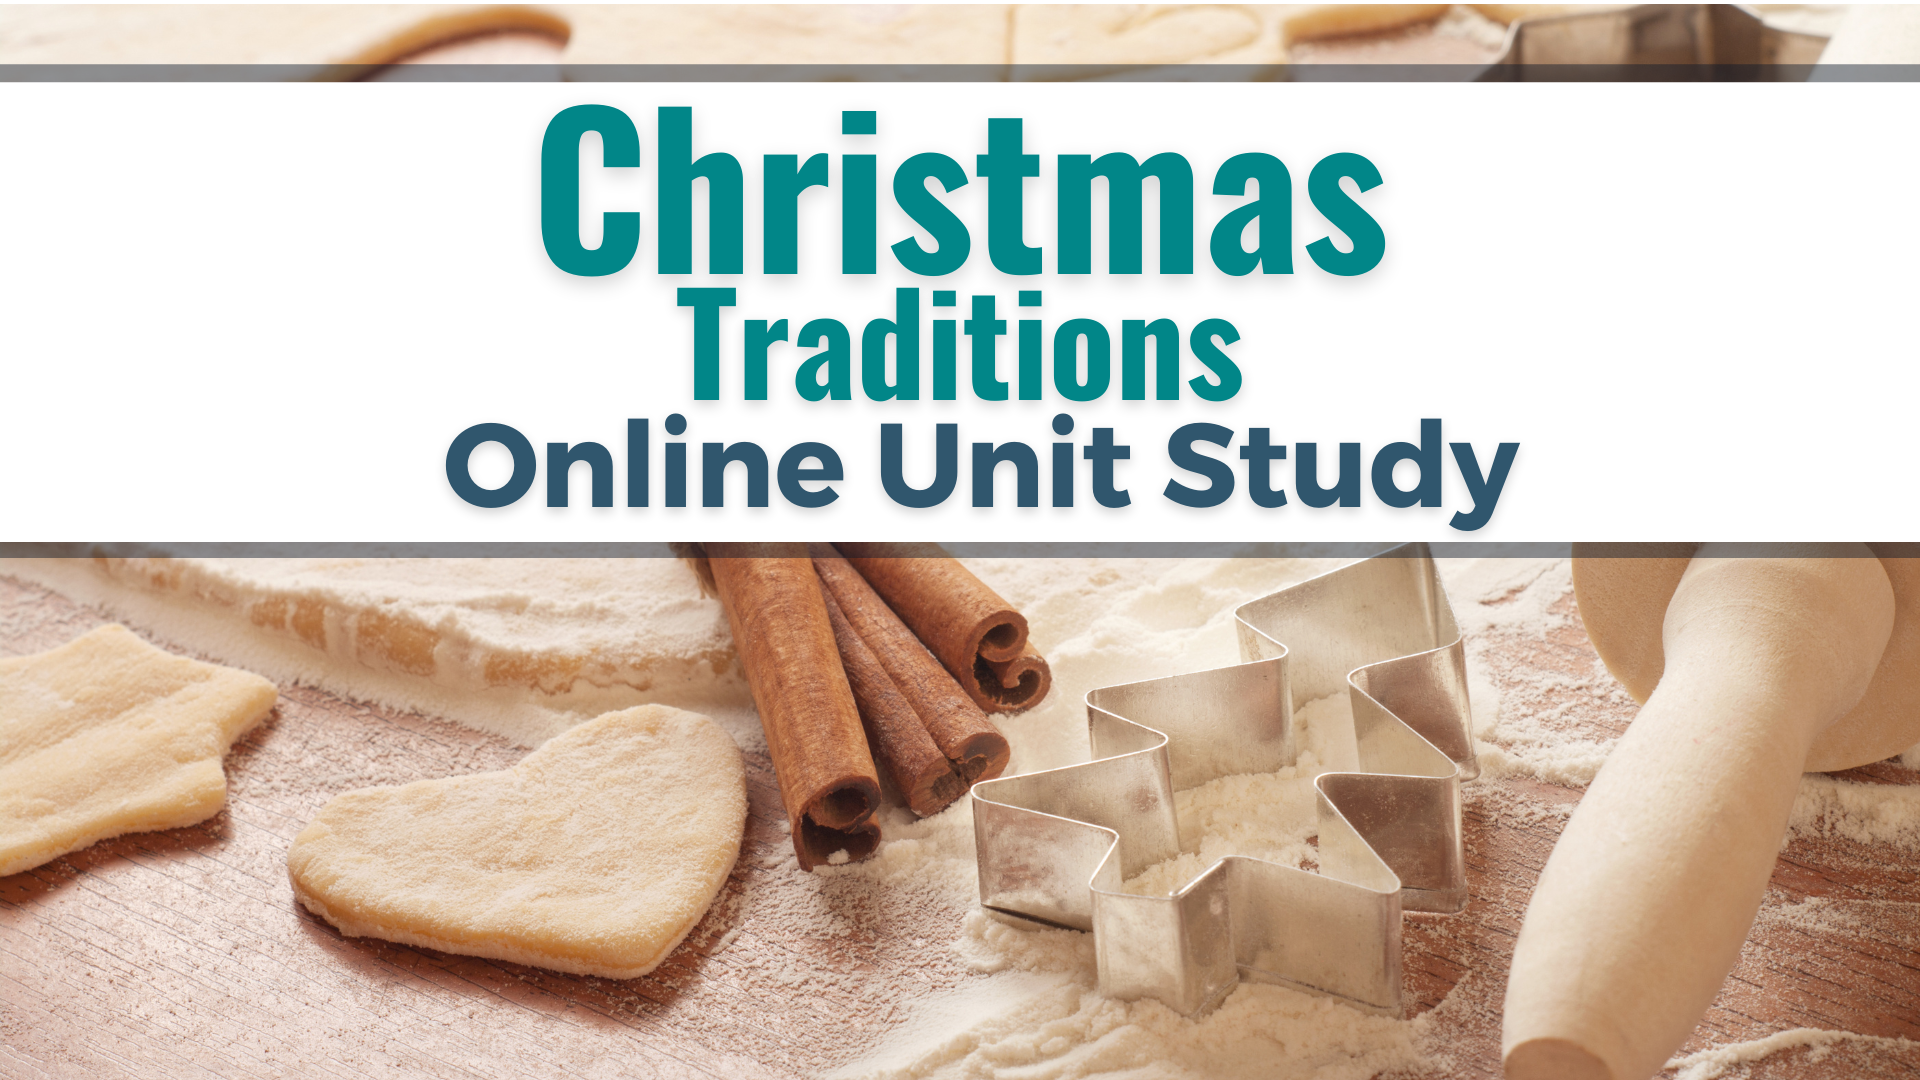 Learn about Christmas Traditions with Online Unit Studies. Online Unit Studies integrate multiple subjects for multiple ages of students. Students access websites and videos and complete digital projects. With Online Unit Studies' easy-to-use E-course format, no additional books and print resources are needed. Just gather supplies for hands-on projects and register for online tools.